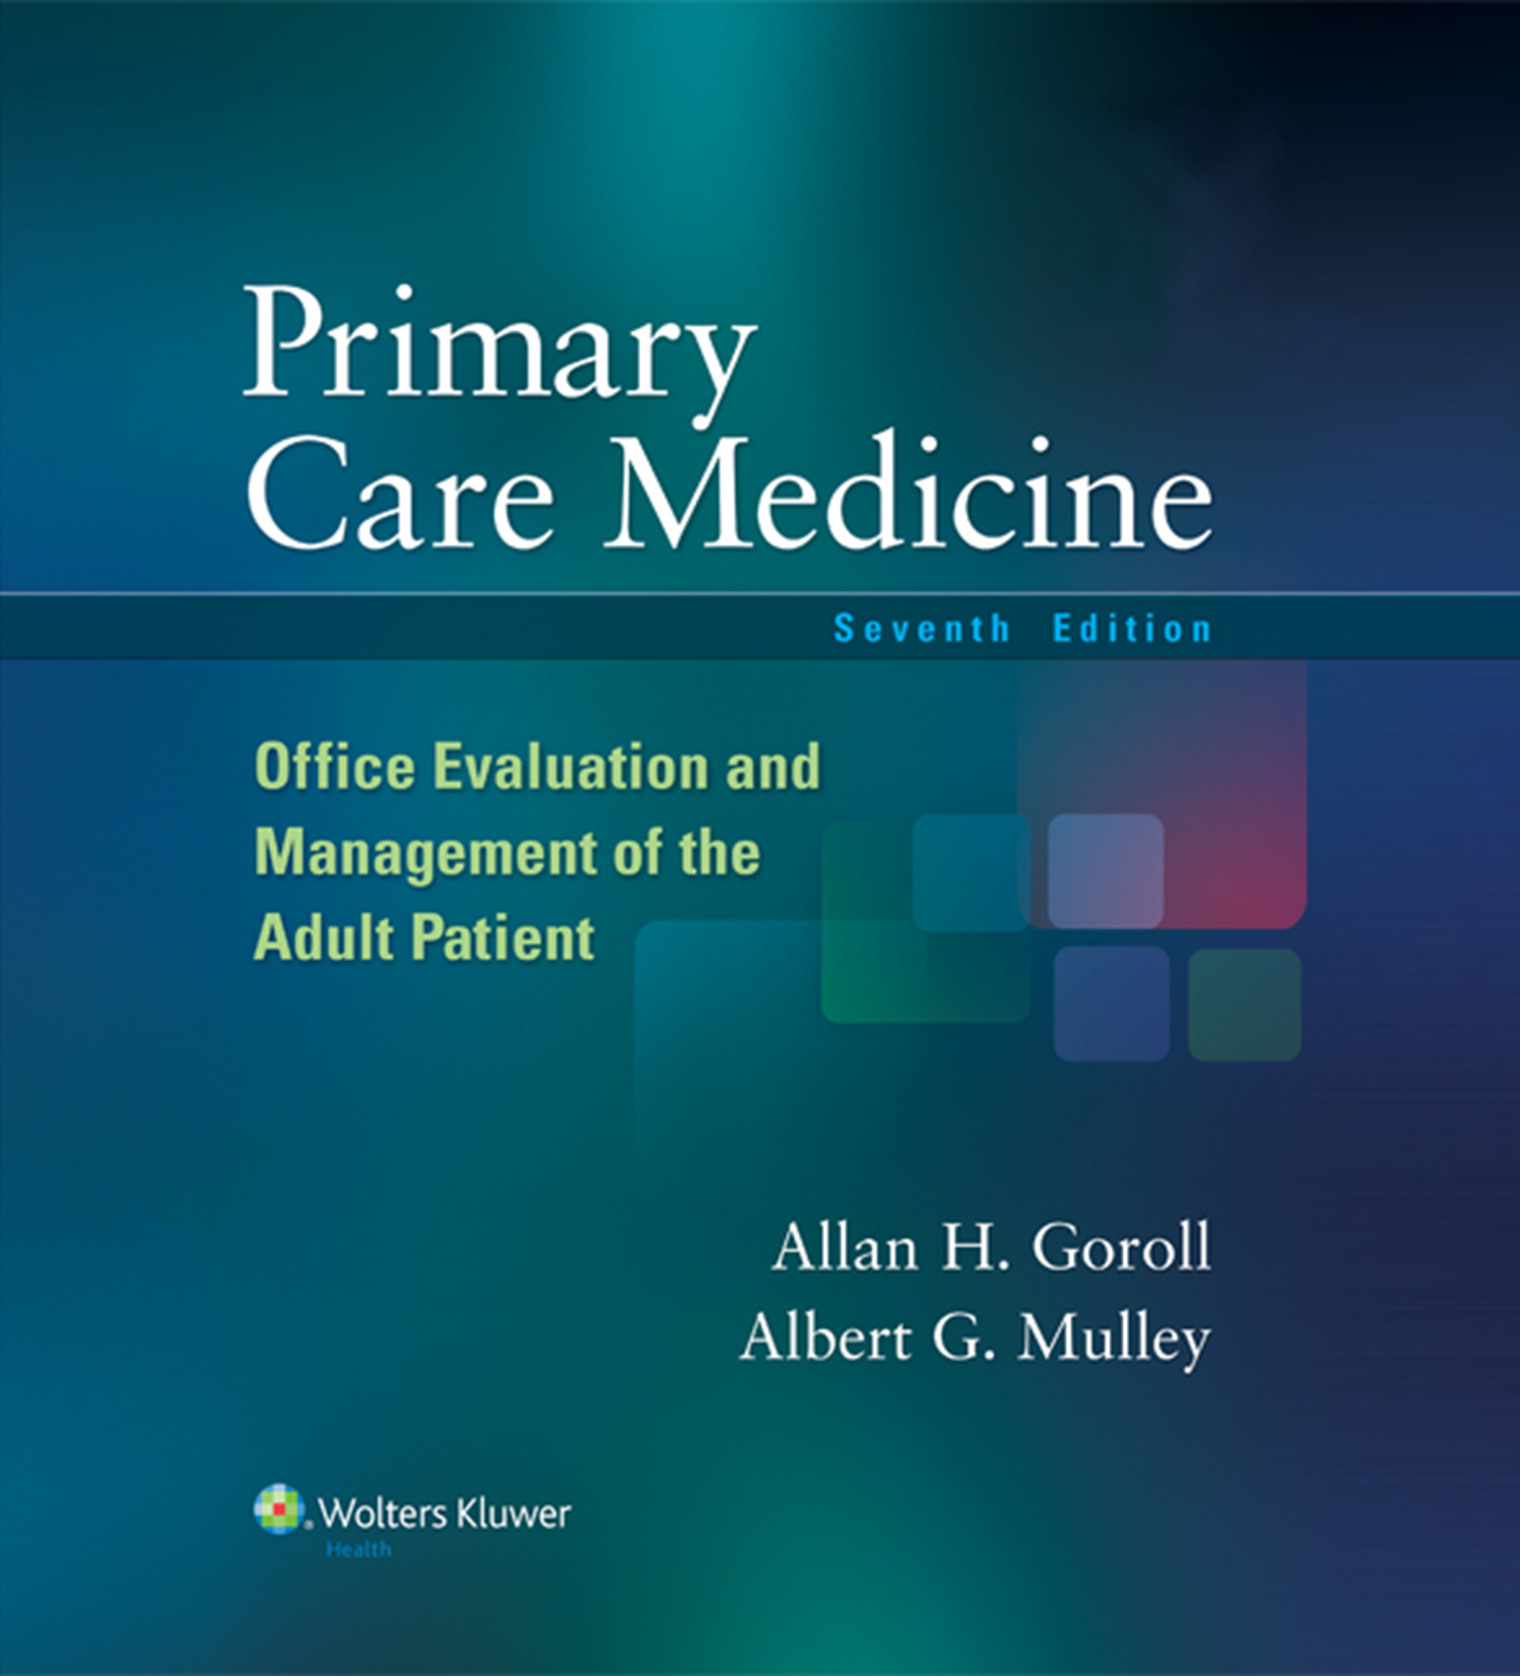 Primary Care Medicine Office Evaluation and Management of